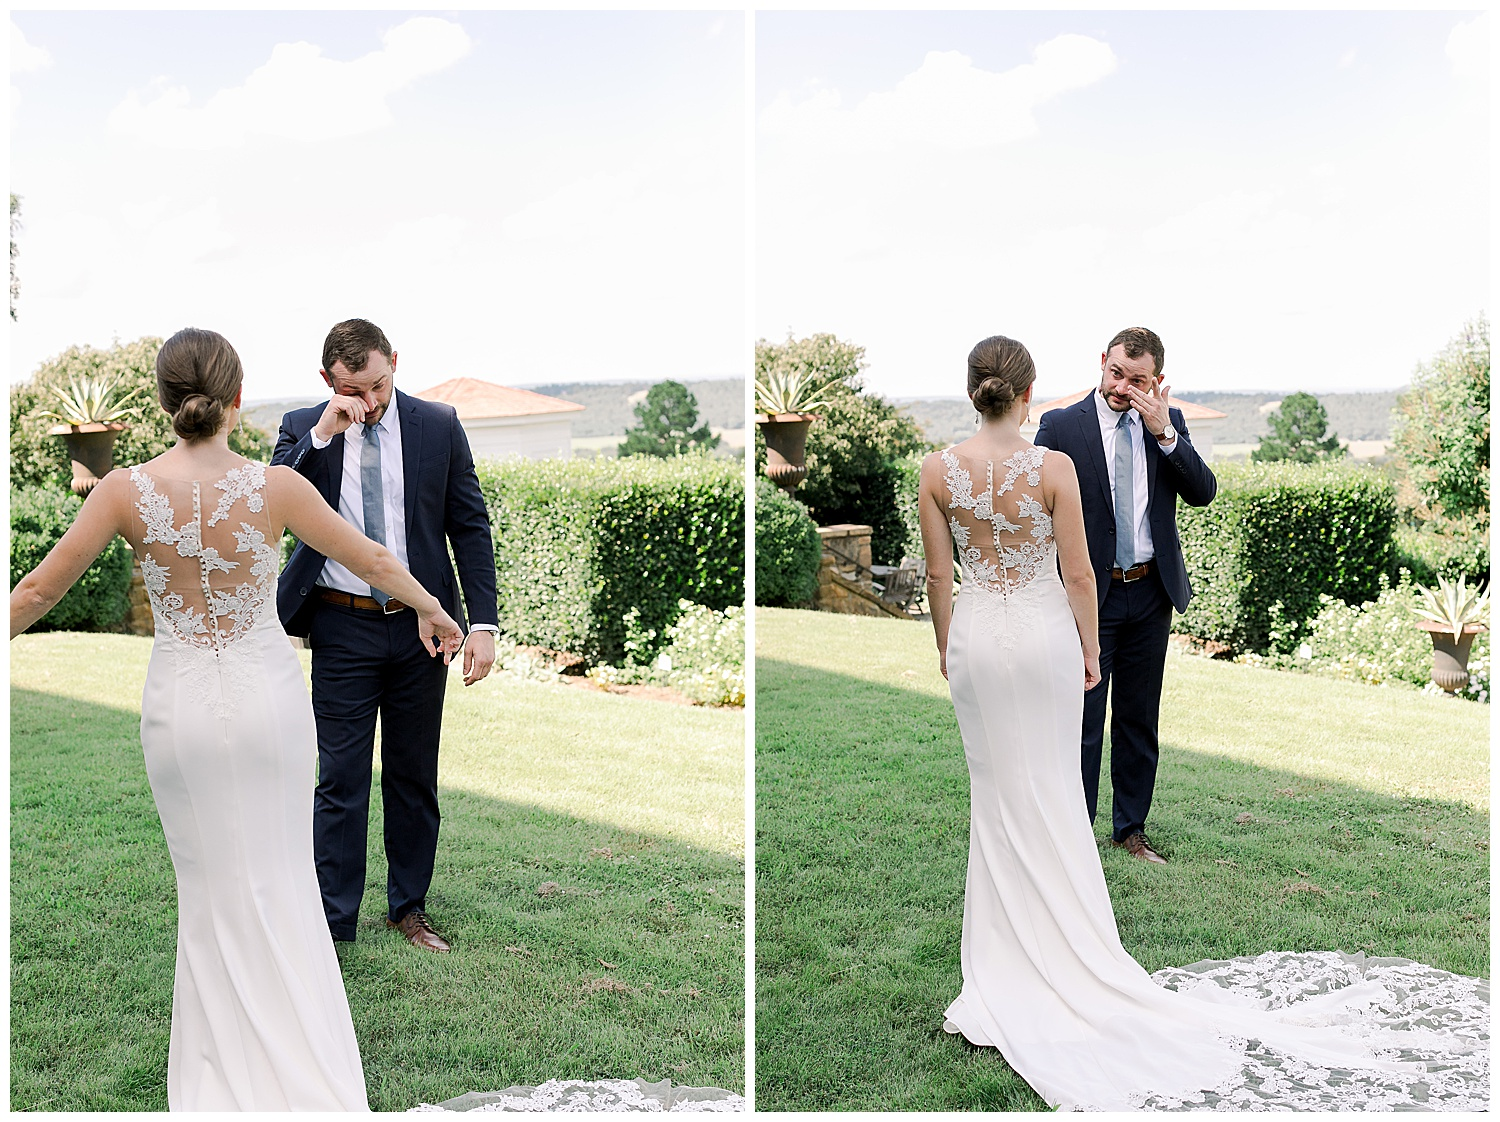 Acacia-Nick-Moss-Mountain-Summer-Wedding-Mary-Kate-Steele-Photography